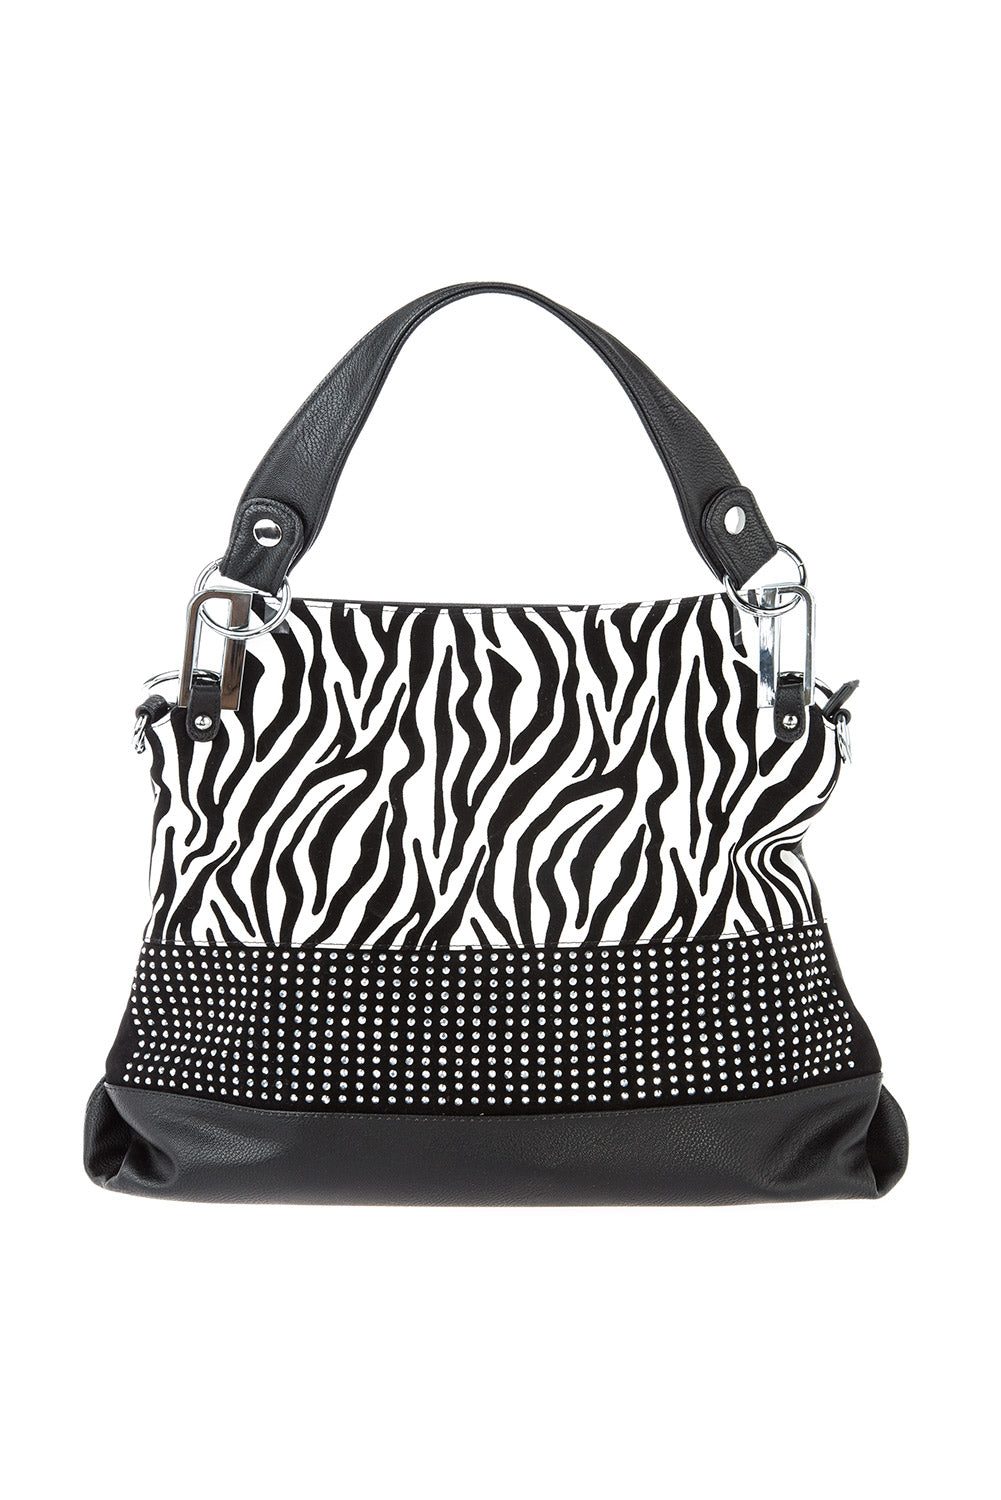 Type 4 Reflective Zebra Handbag